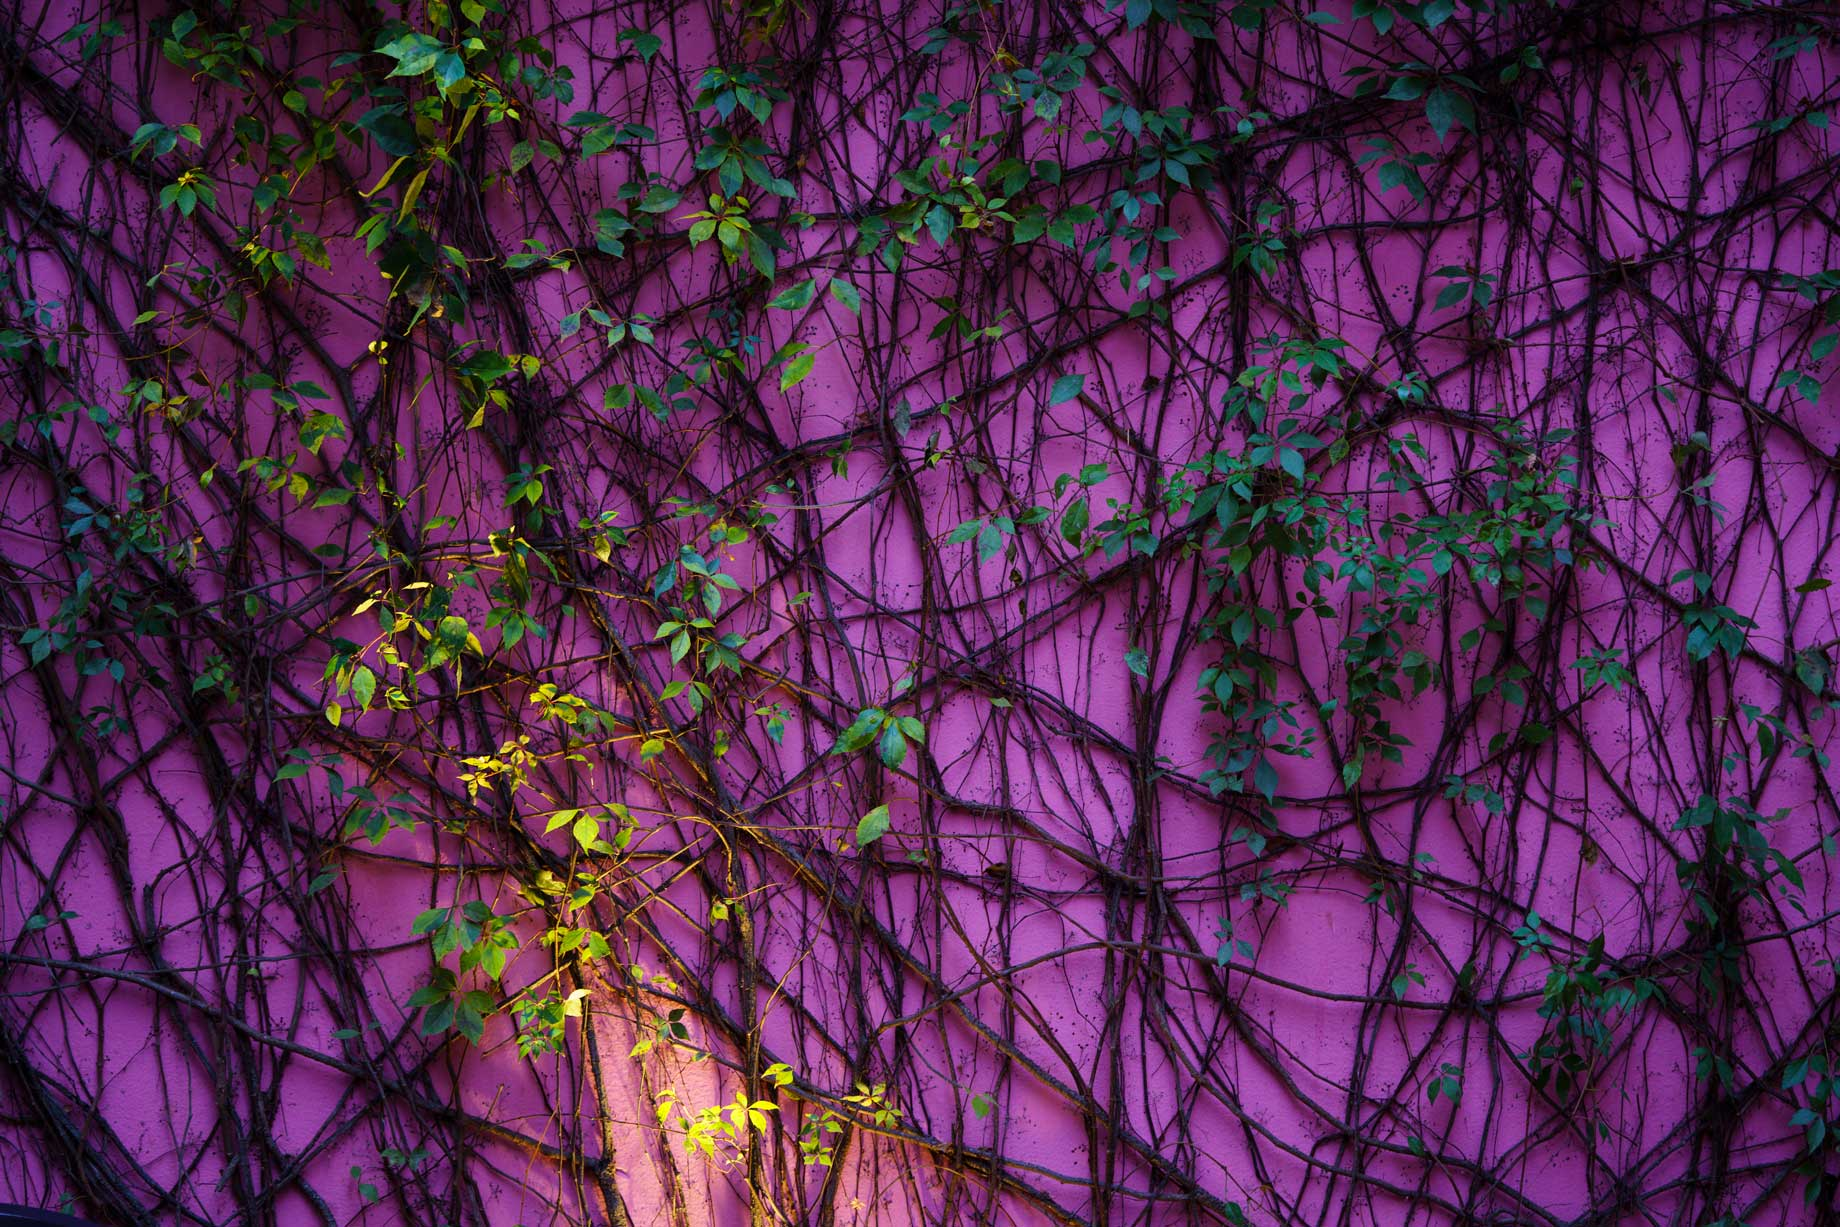 Purple Wall With Green Plant Vines Yucátan, Mexico | Stories + Objects Travel Images